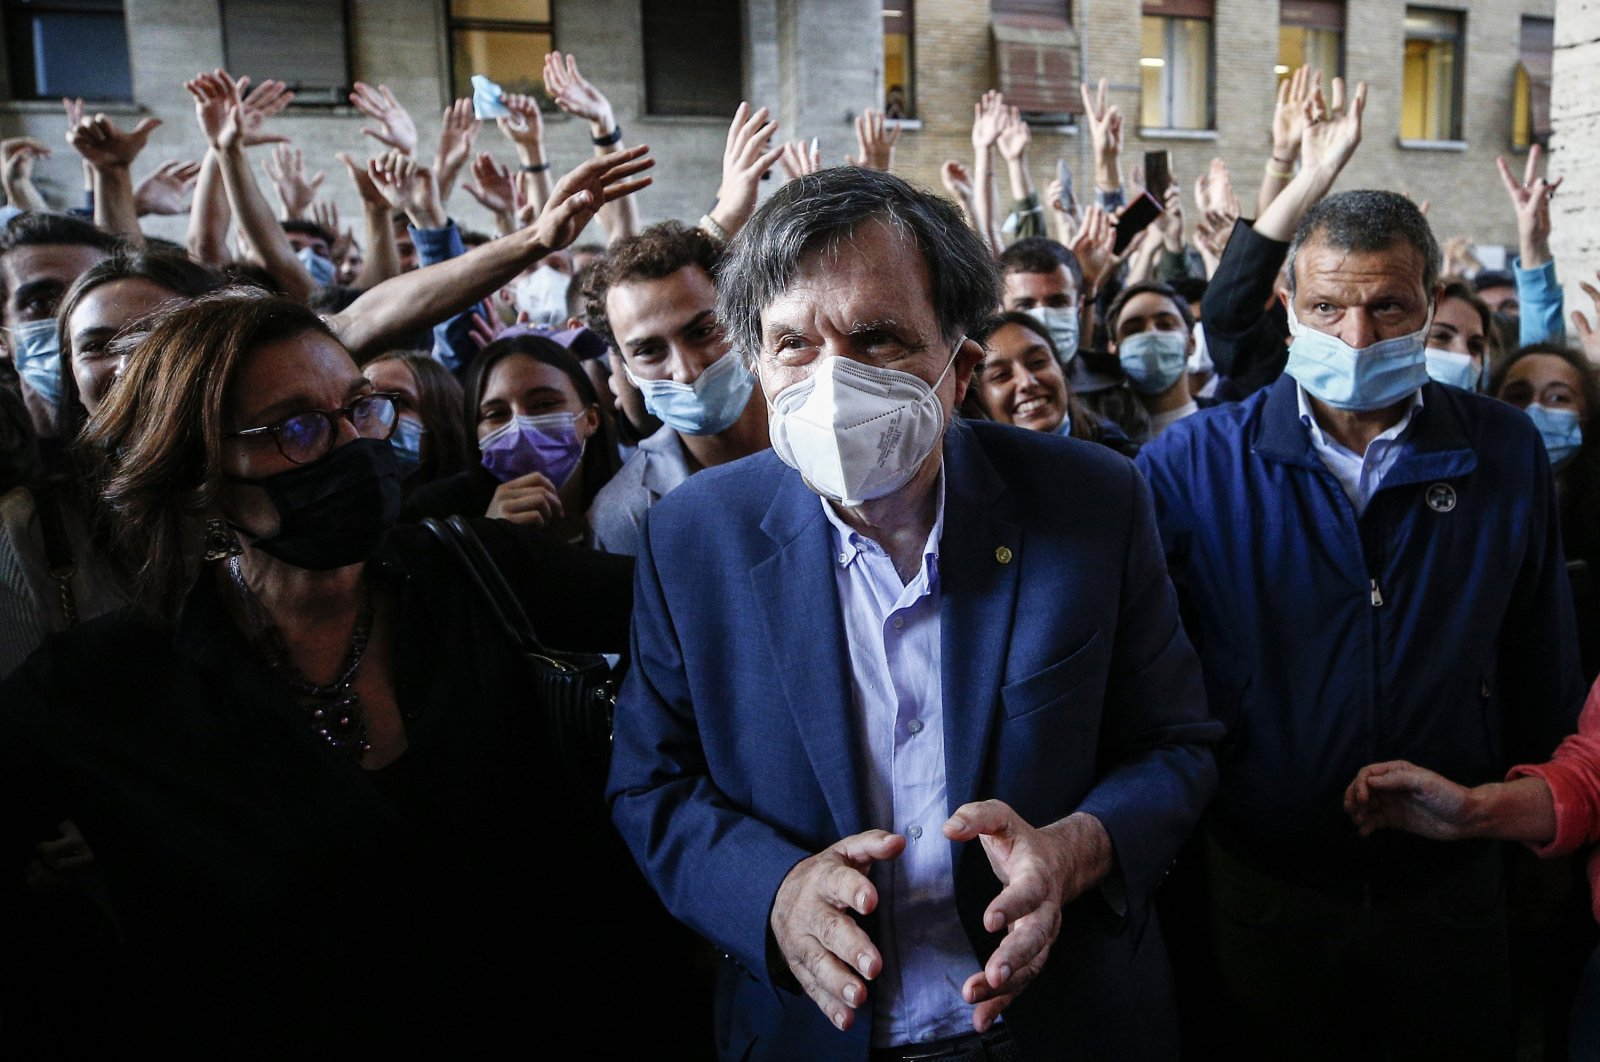 Italian physicist Giorgio Parisi is cheered by students as he arrives at the Sapienza University, in Rome, Italy, Oct. 5, 2021. (AP Photo)